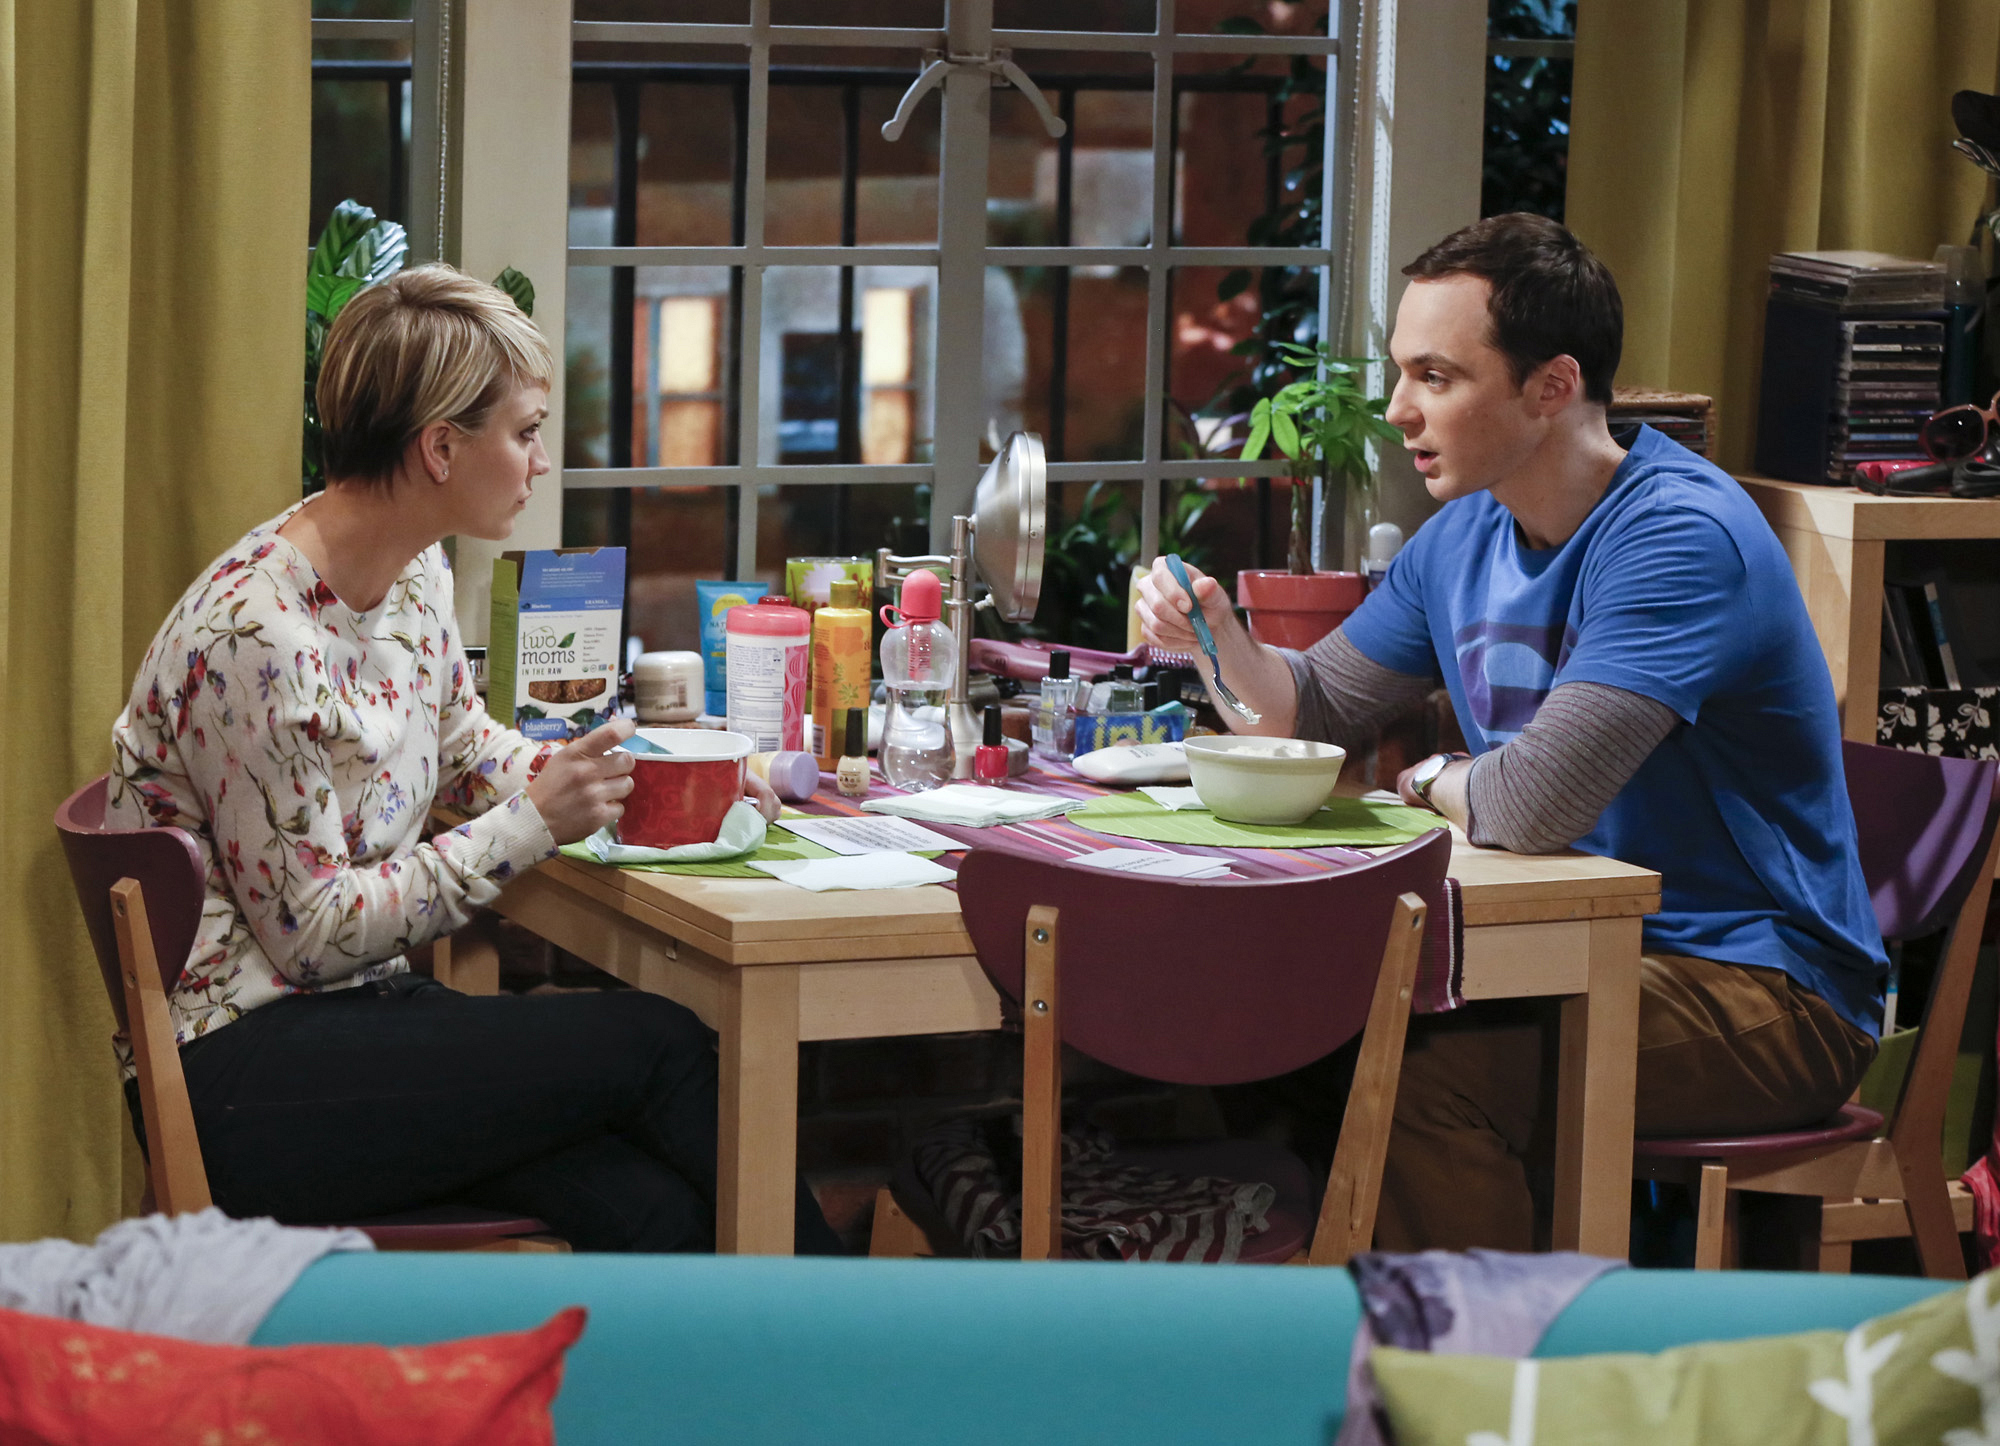 Sheldon and Penny get to know each other better